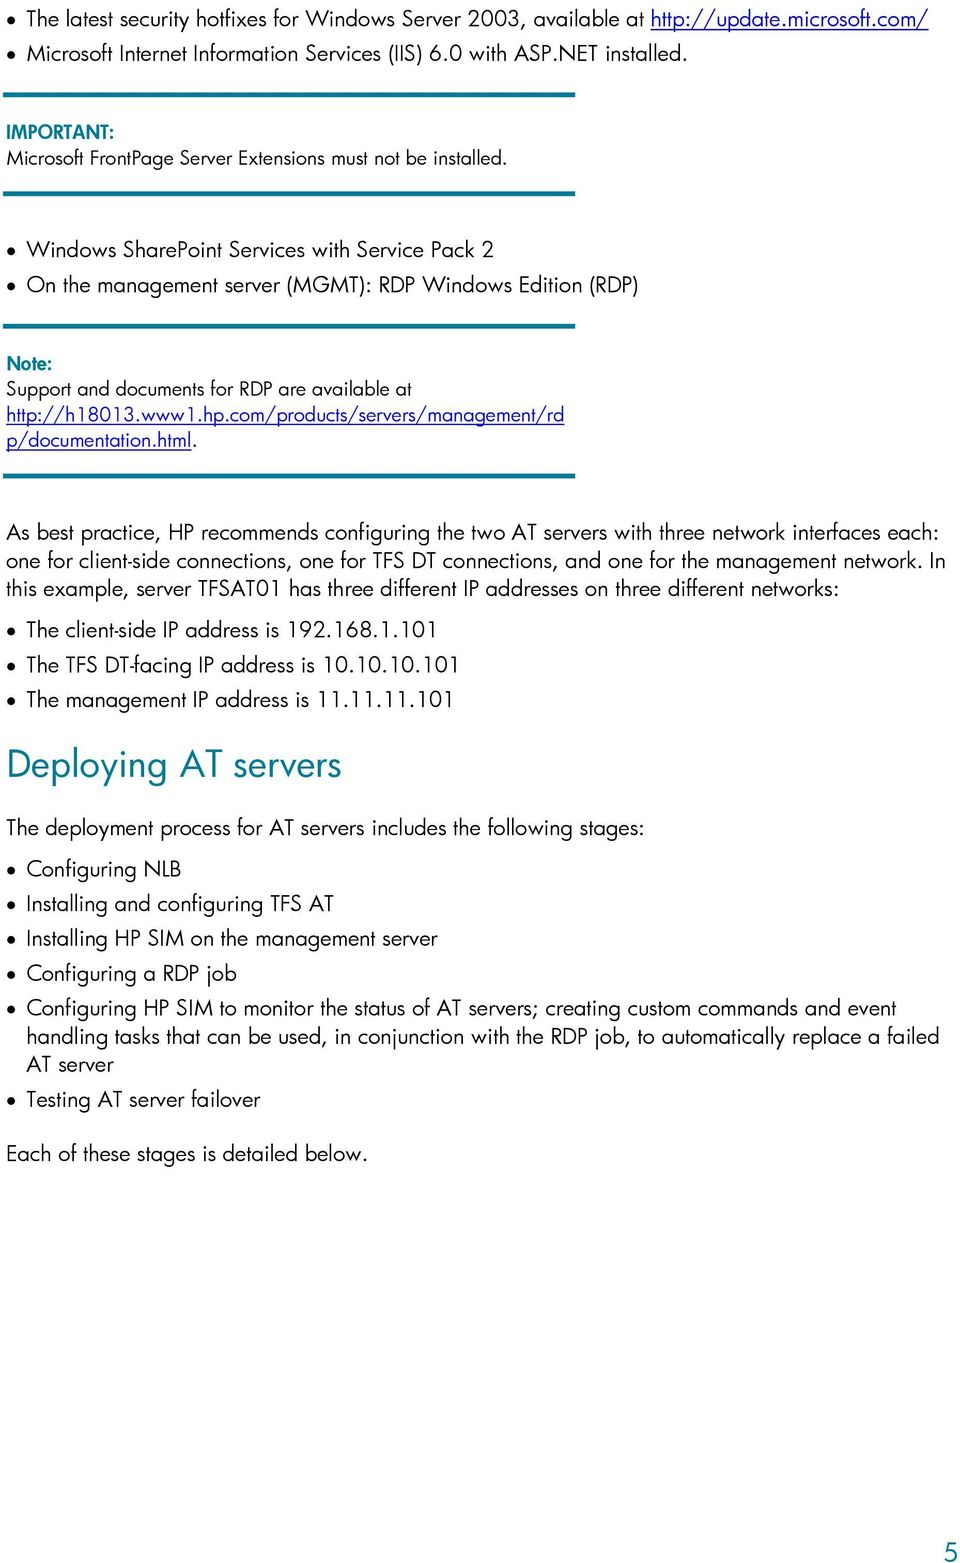 Windows SharePoint Services with Service Pack 2 On the management server (MGMT): RDP Windows Edition (RDP) Note: Support and documents for RDP are available at http://h18013.www1.hp.